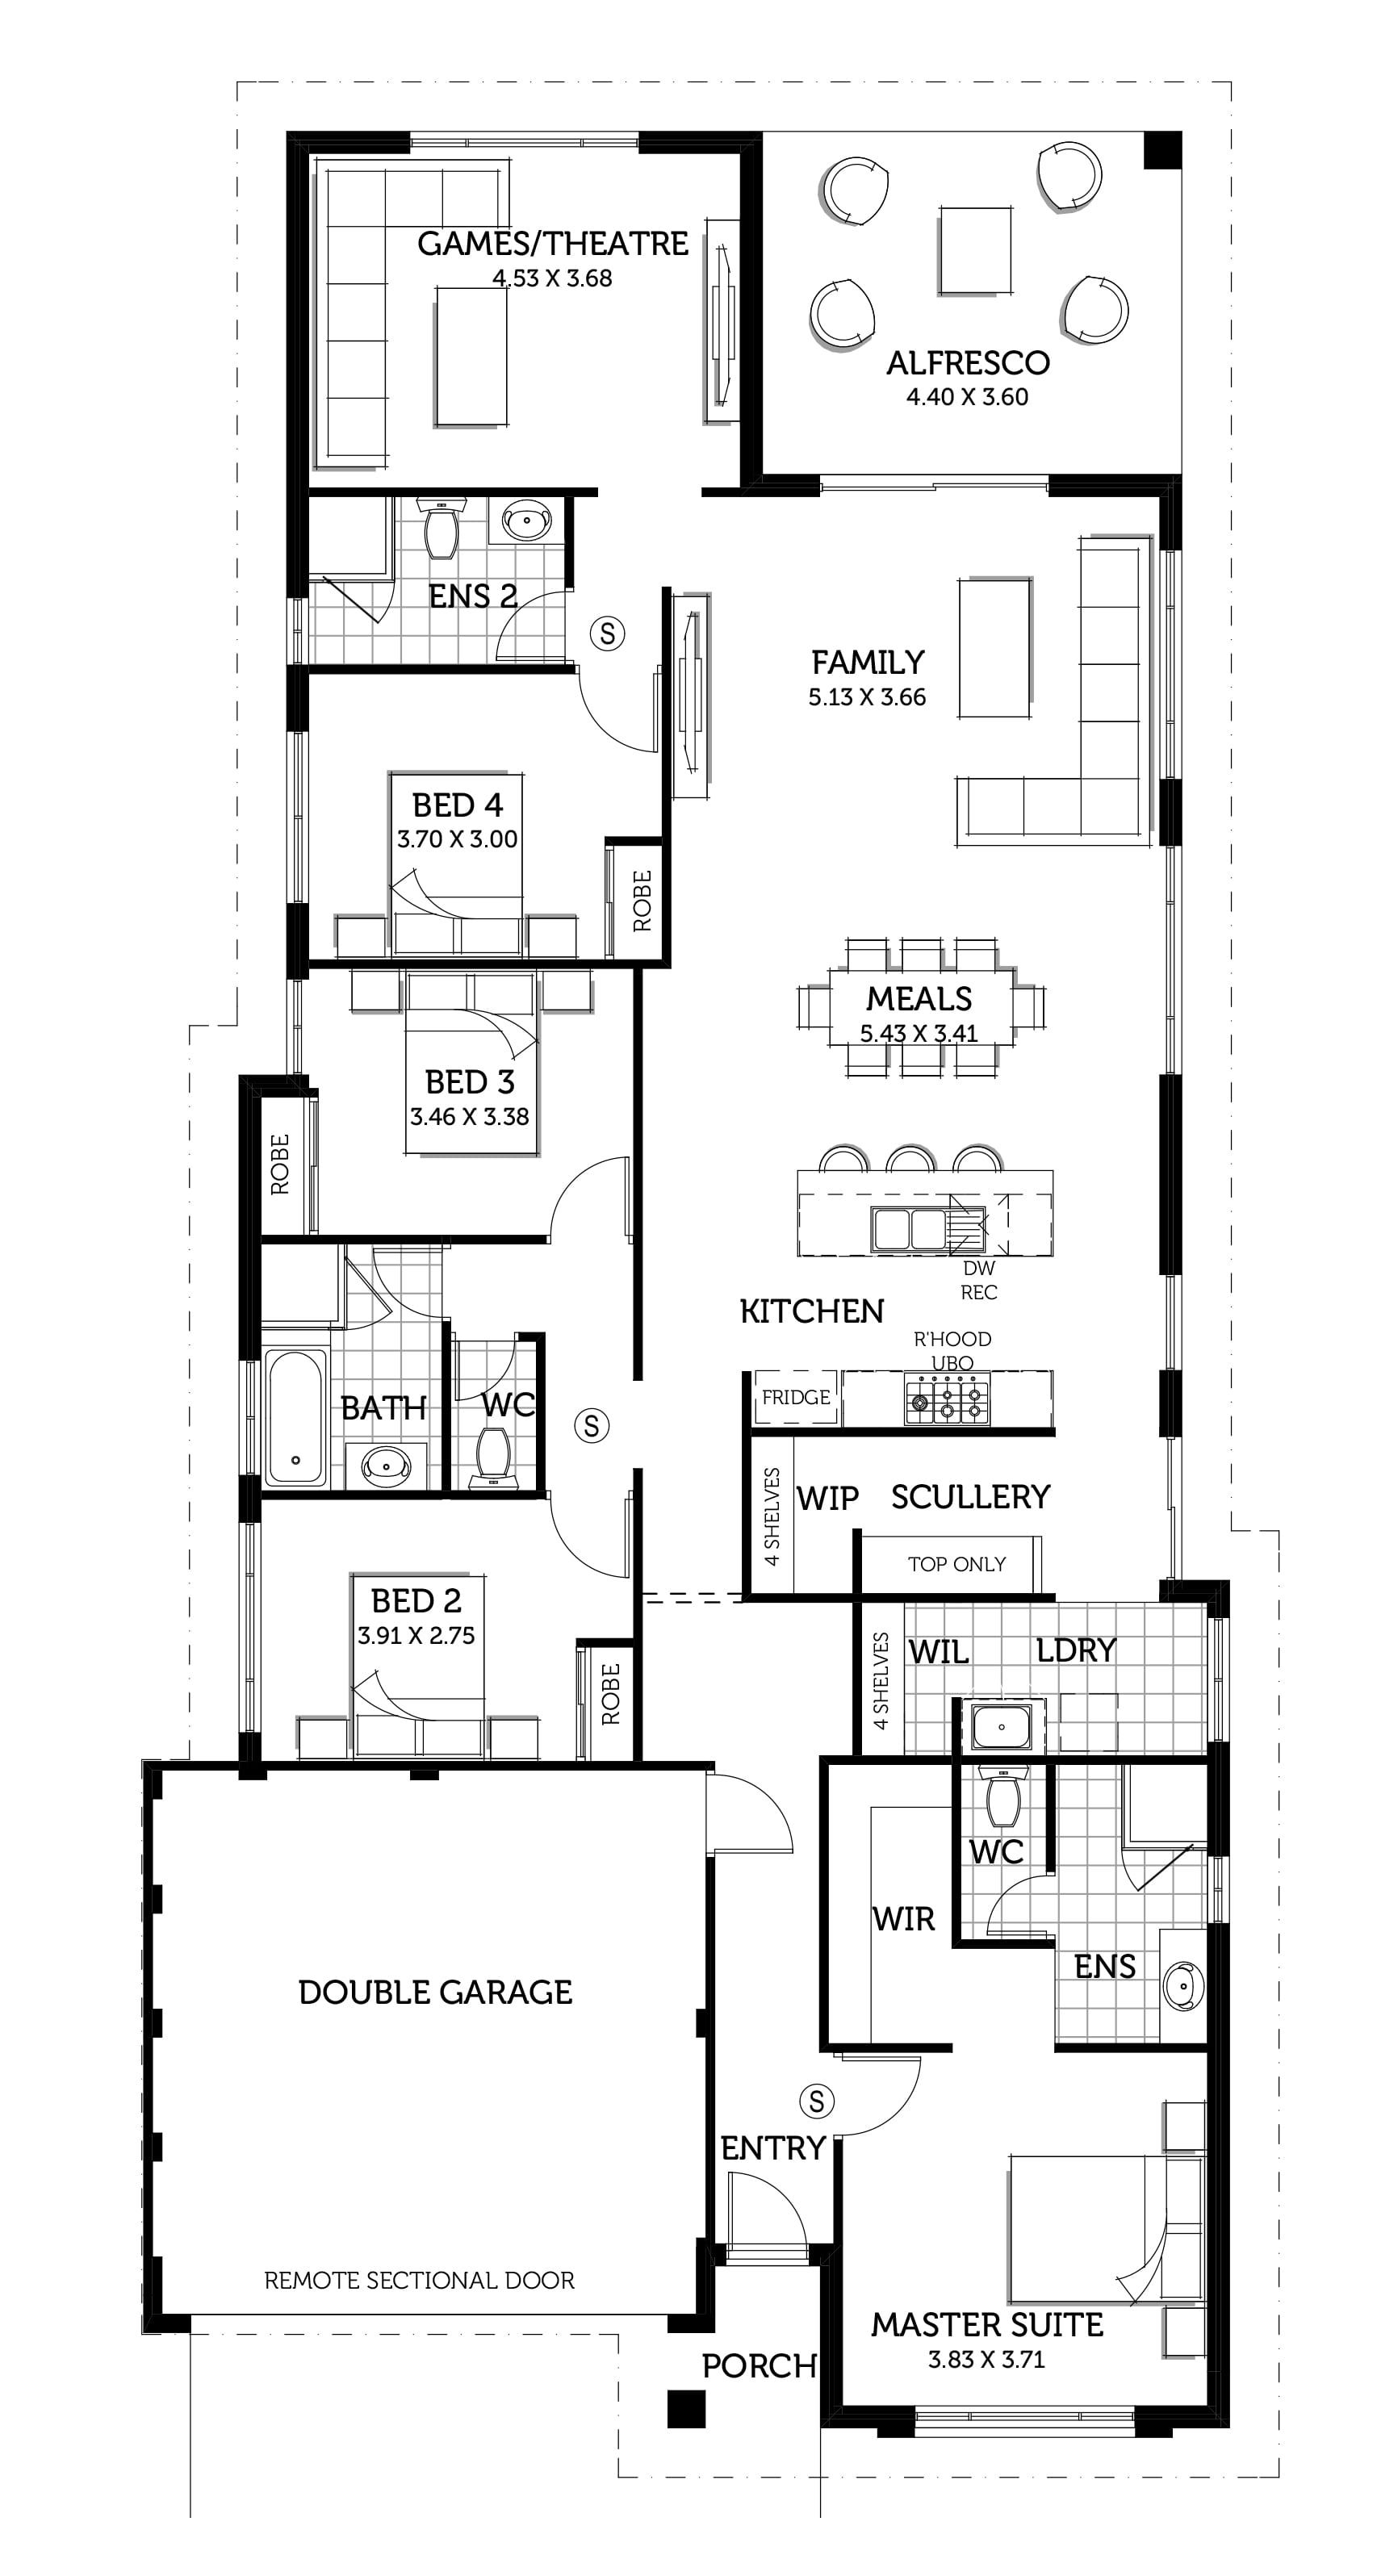 The Legacy Home Design Smart Homes For Living Smart Home Design House Design Home Design Floor Plans